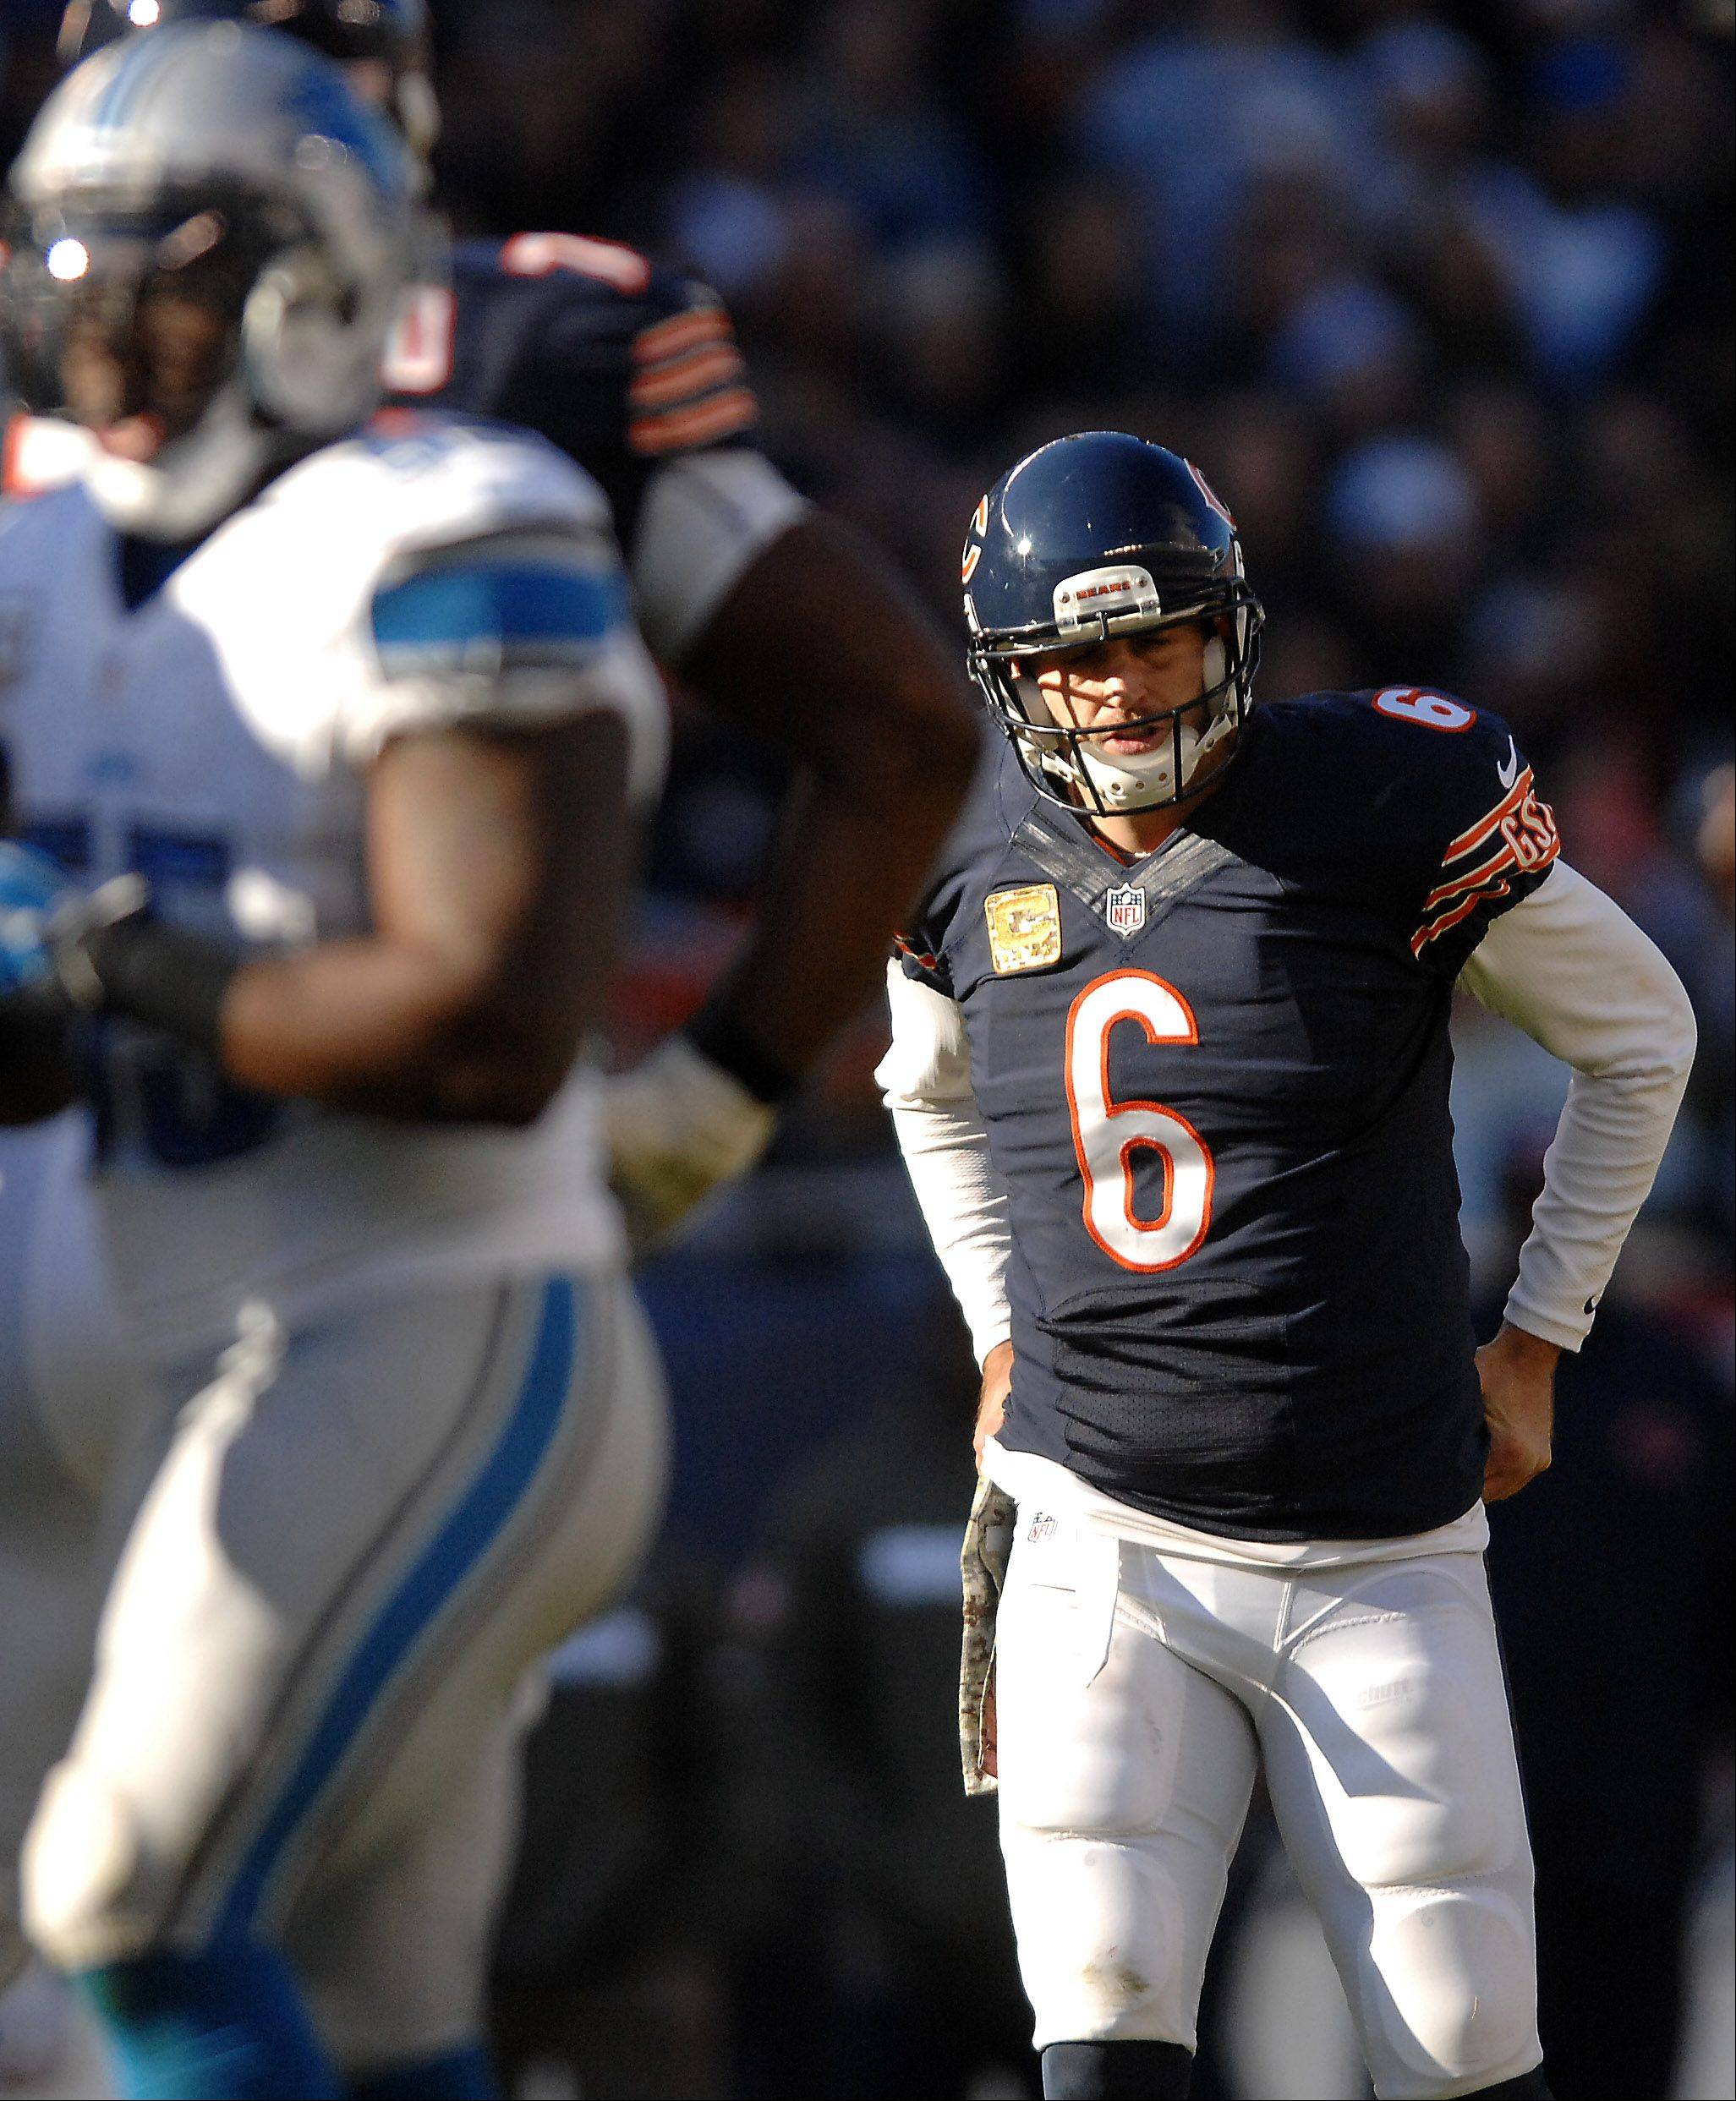 Jay Cutler gets up slowly after a third-quarter play during Sunday's loss to the Lions.